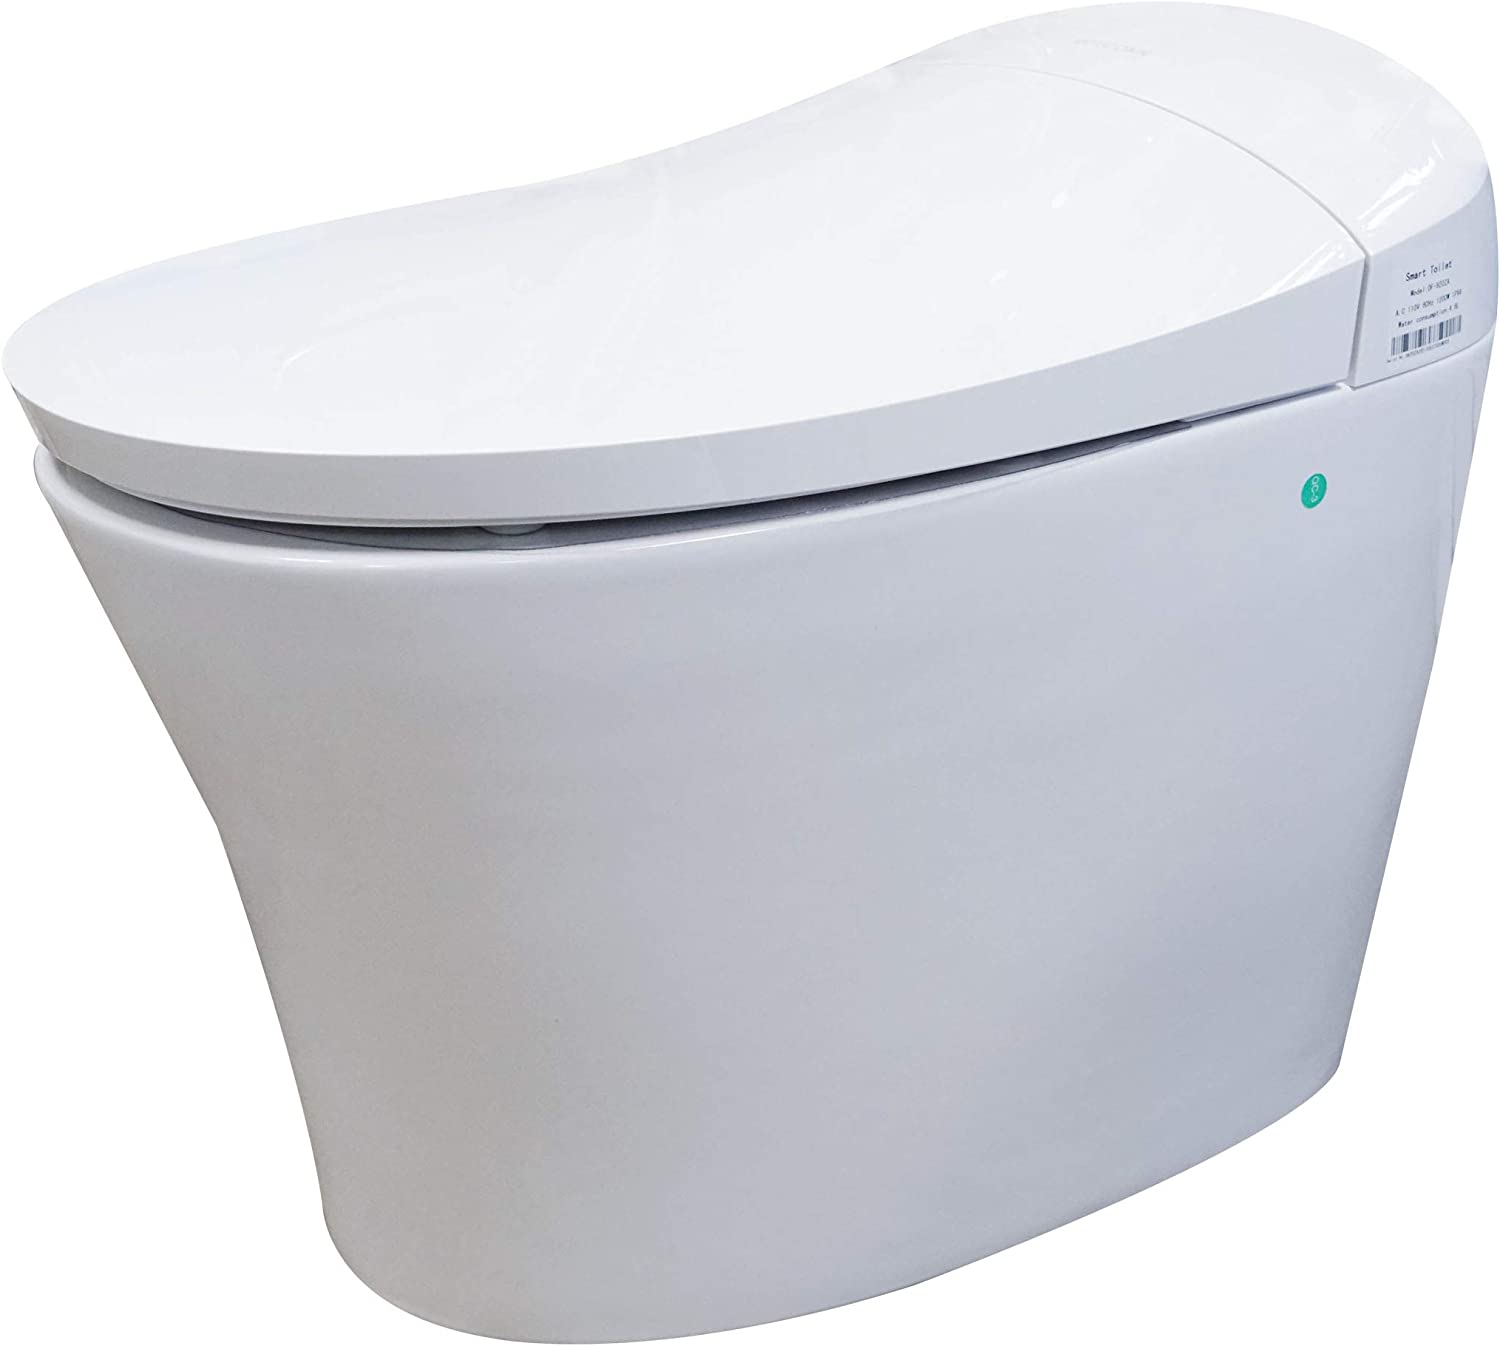 Dyconn Faucet Df 820za Arial Tankless All In One Combo Bidet Smart Toilet White Amazon Com